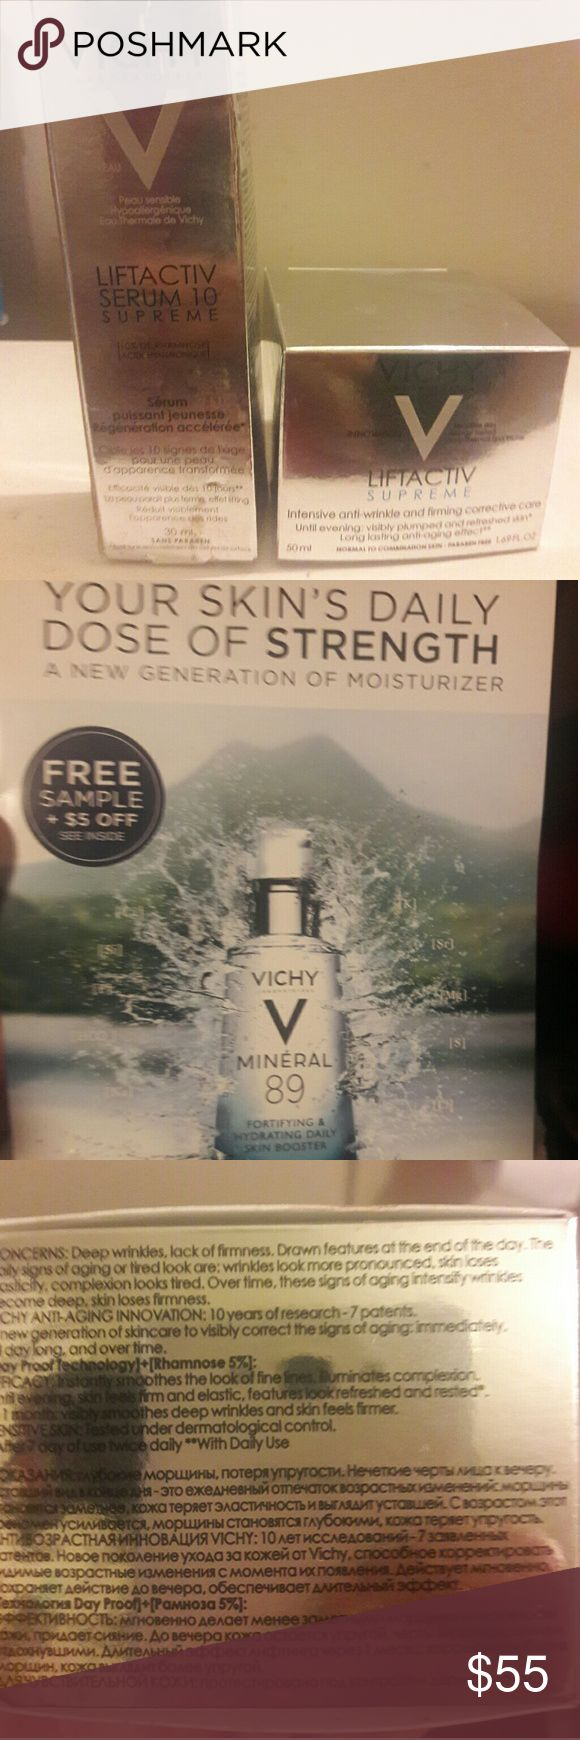 VICHY Liftactiv Supreme Moisturizer & Serum *Brand New* Cult FAVORITE European skincare  FIVE STAR SKINCARE LINE  Ideal for aging skin.  *Visibly reduces lines and wrinkles. ( PLUMPED SKIN GUARANTEED IN 10 DAYS BY VICHY)   🔥This is the NEW AND IMPROVED FORMULA🔥  *Ill even include a free sample of their newest serum!!  Items available individually  1) $30 2)$55 Vichy Makeup Face Primer